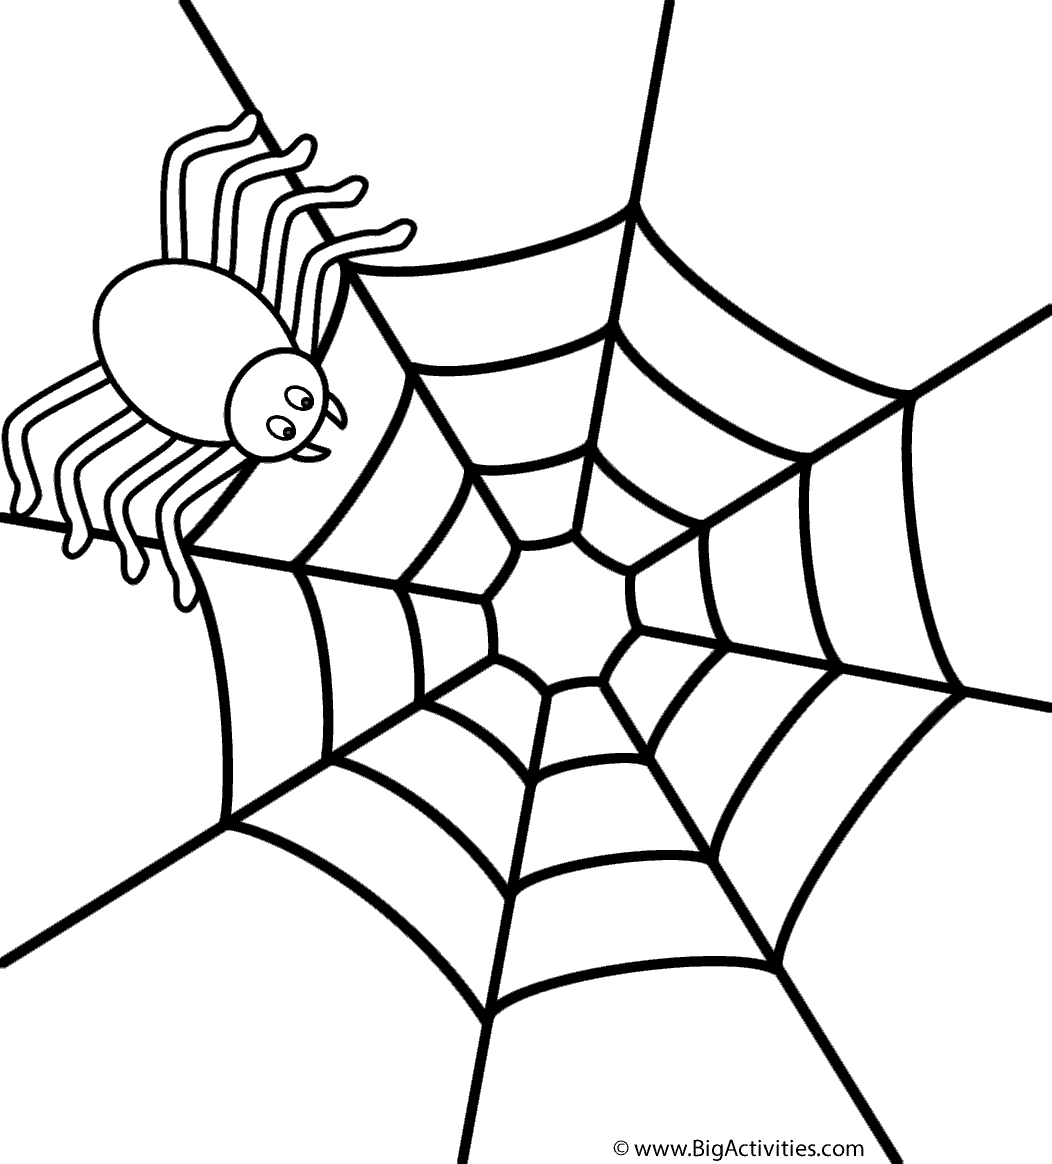 Coloring Page Spider Coloring Page Insect Coloring Pages Coloring Pages